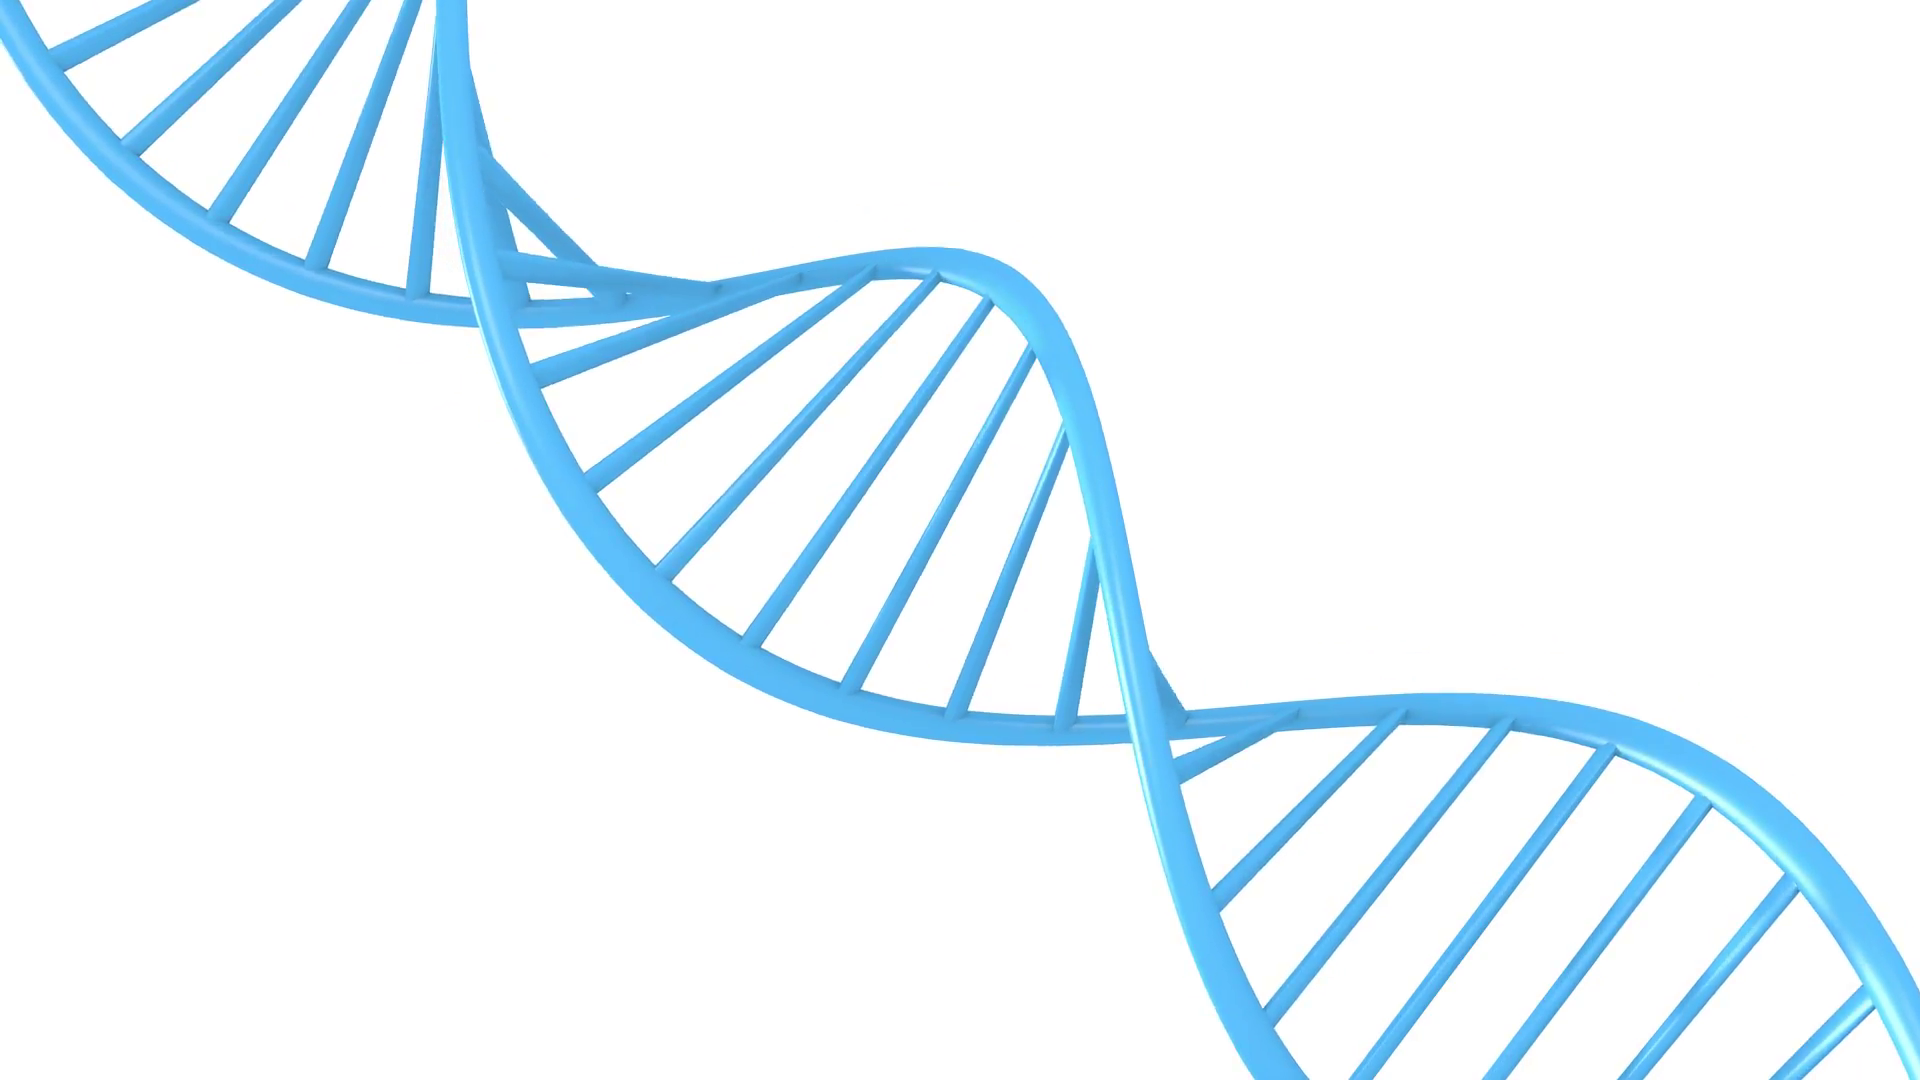 Genetic data string concept of a blue double helix DNA molecule ...